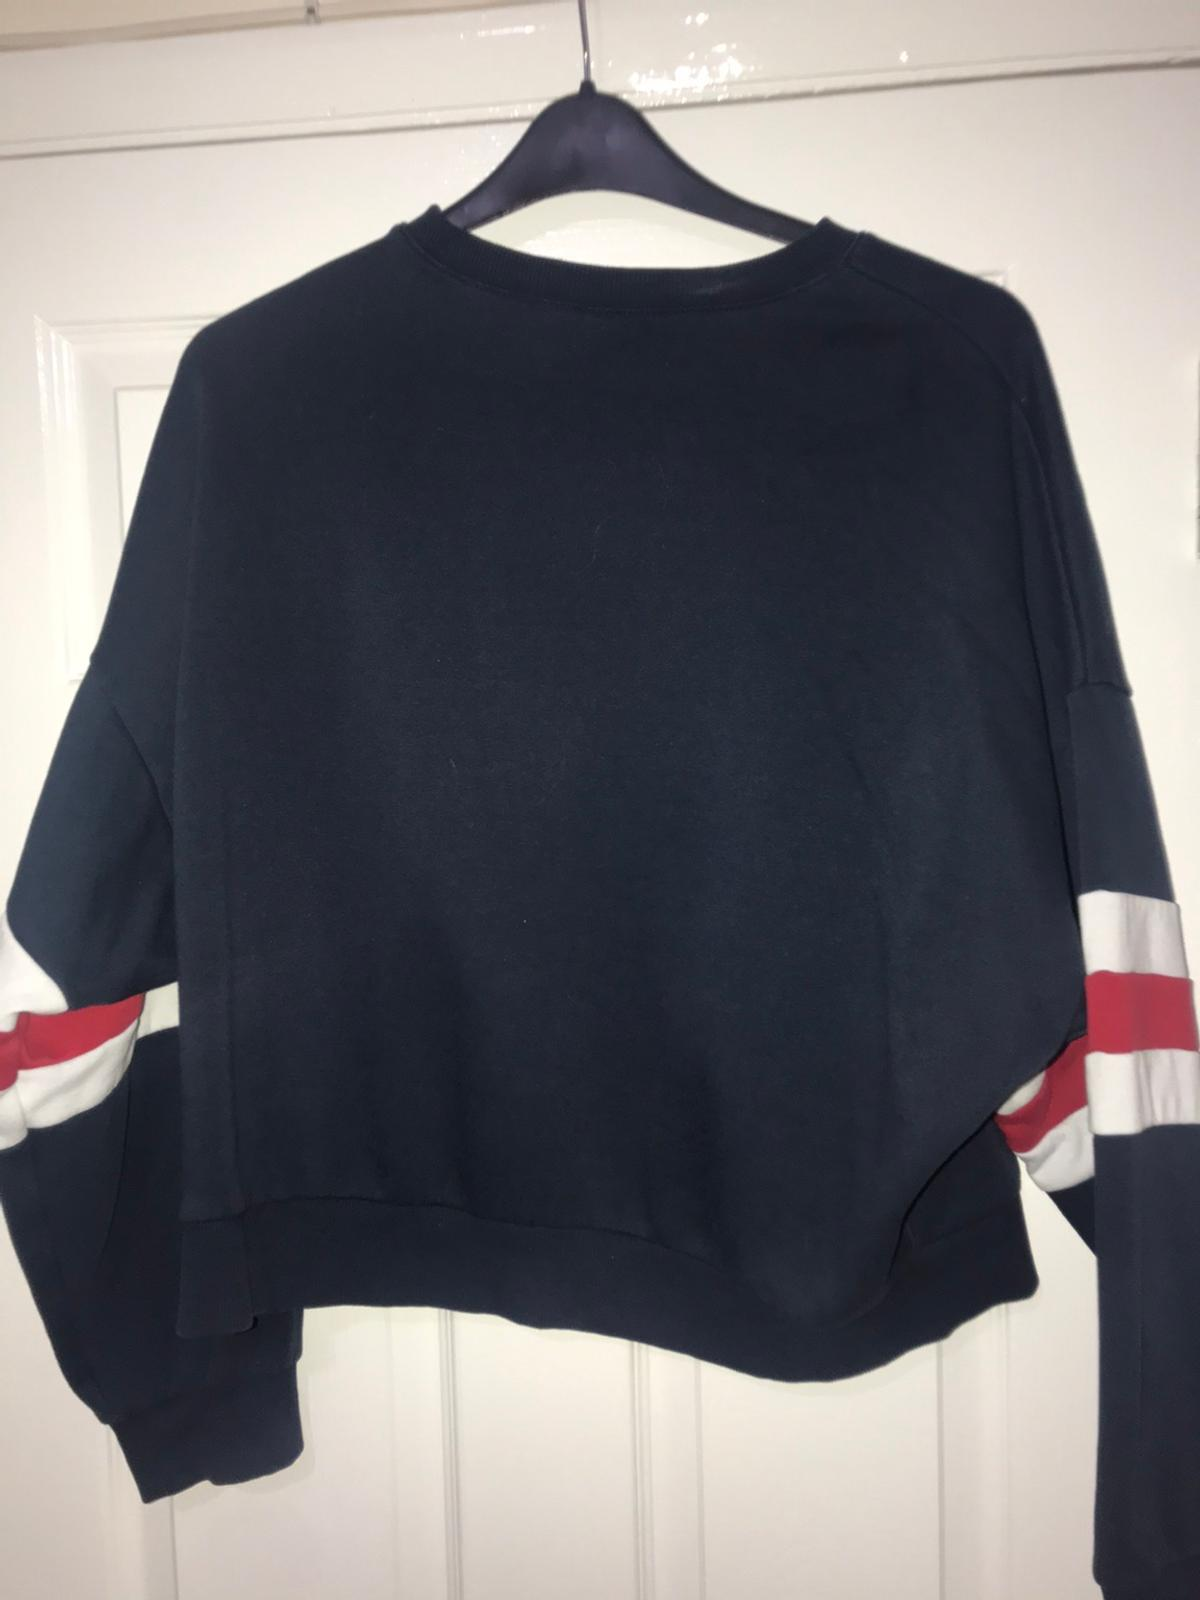 Ladies blue jumper. Tommy Hilfiger style. I brought this for £18.99 from h&m last winter, I didn't wear it much! Size Medium.